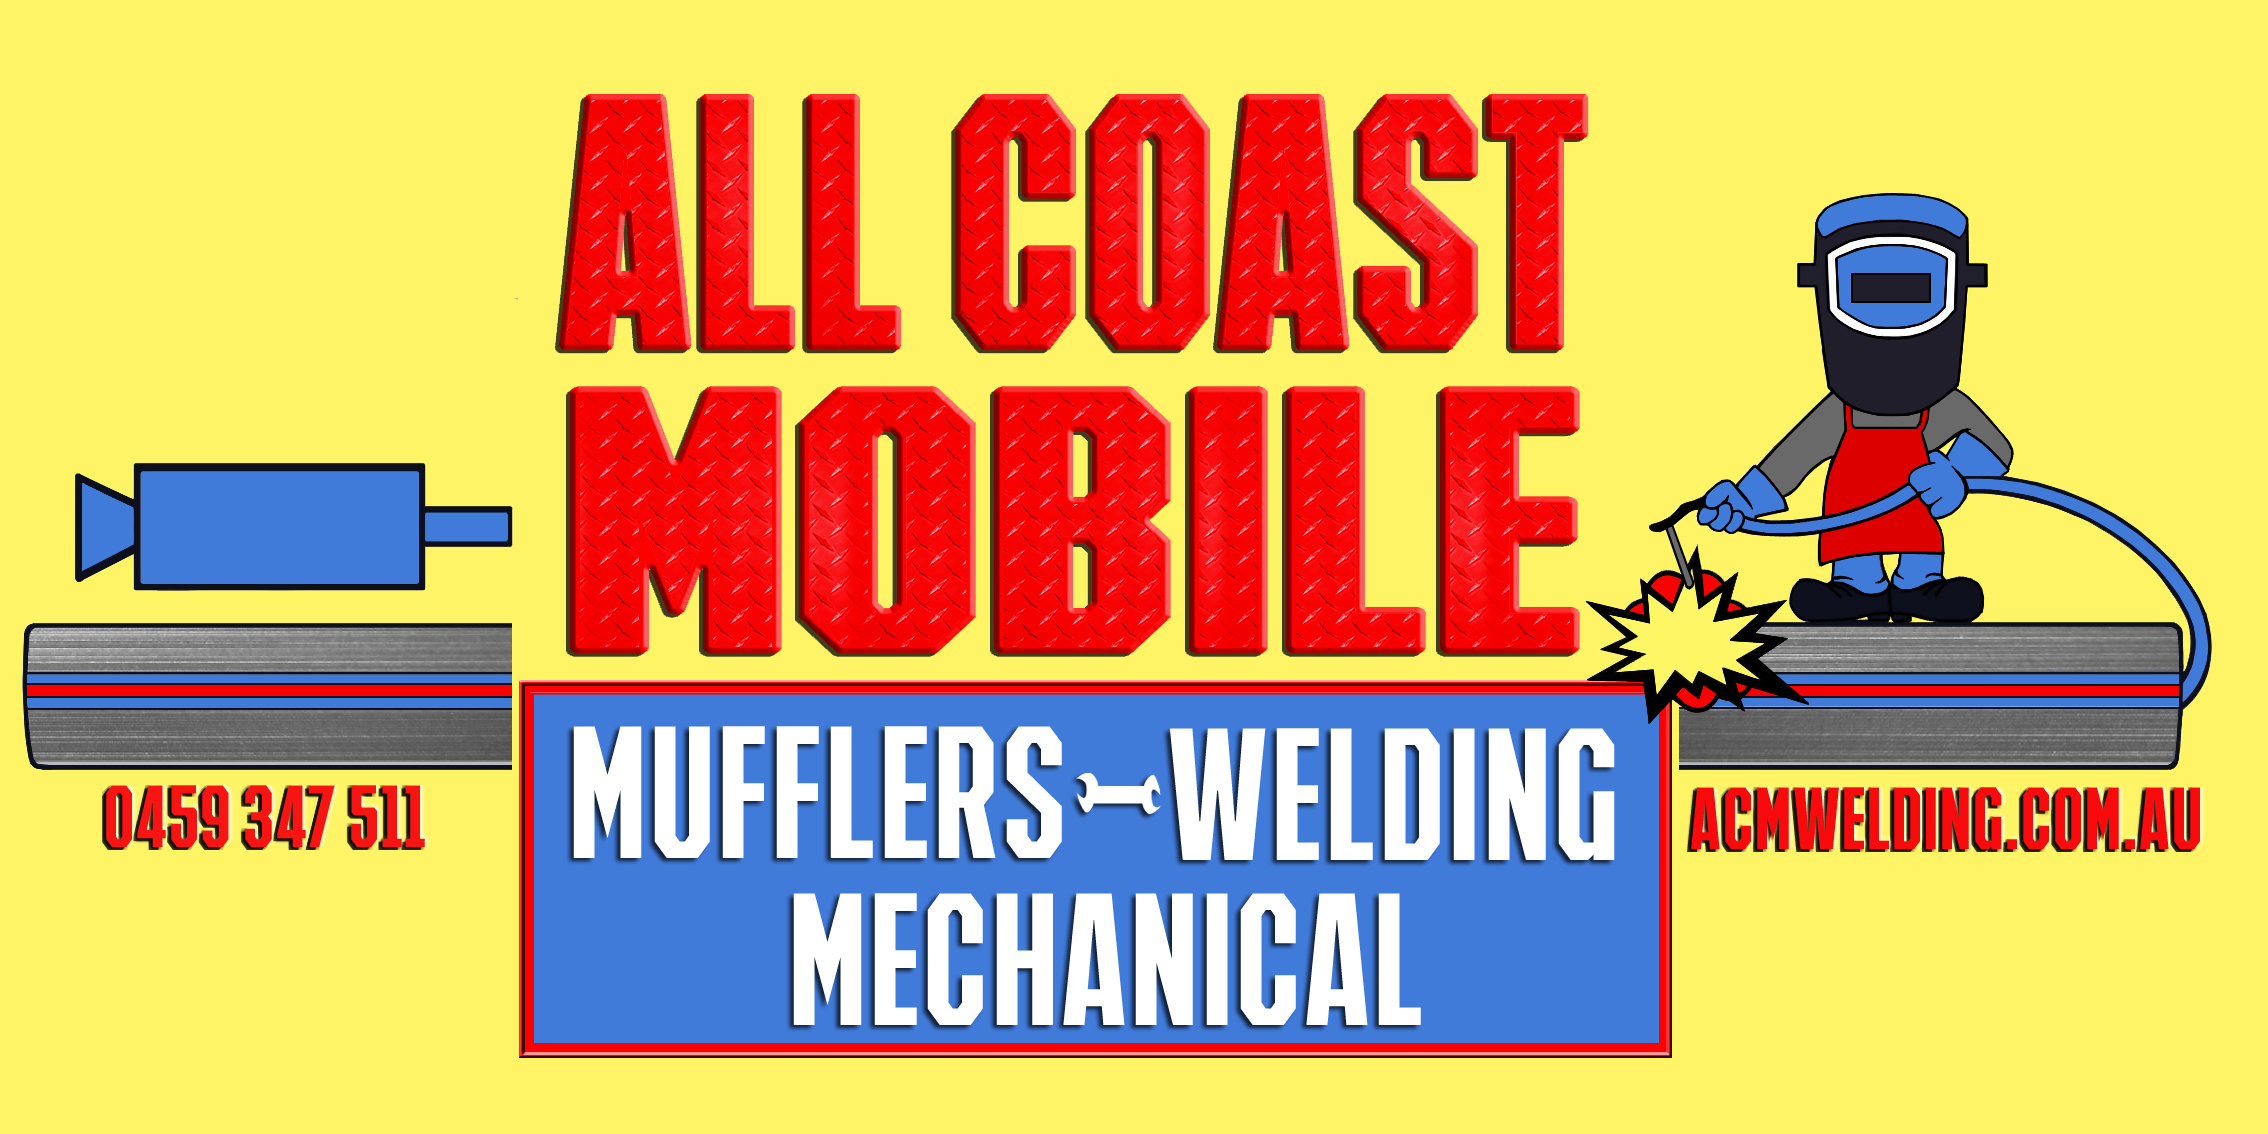 Logo design - All Coast Mobile Welding